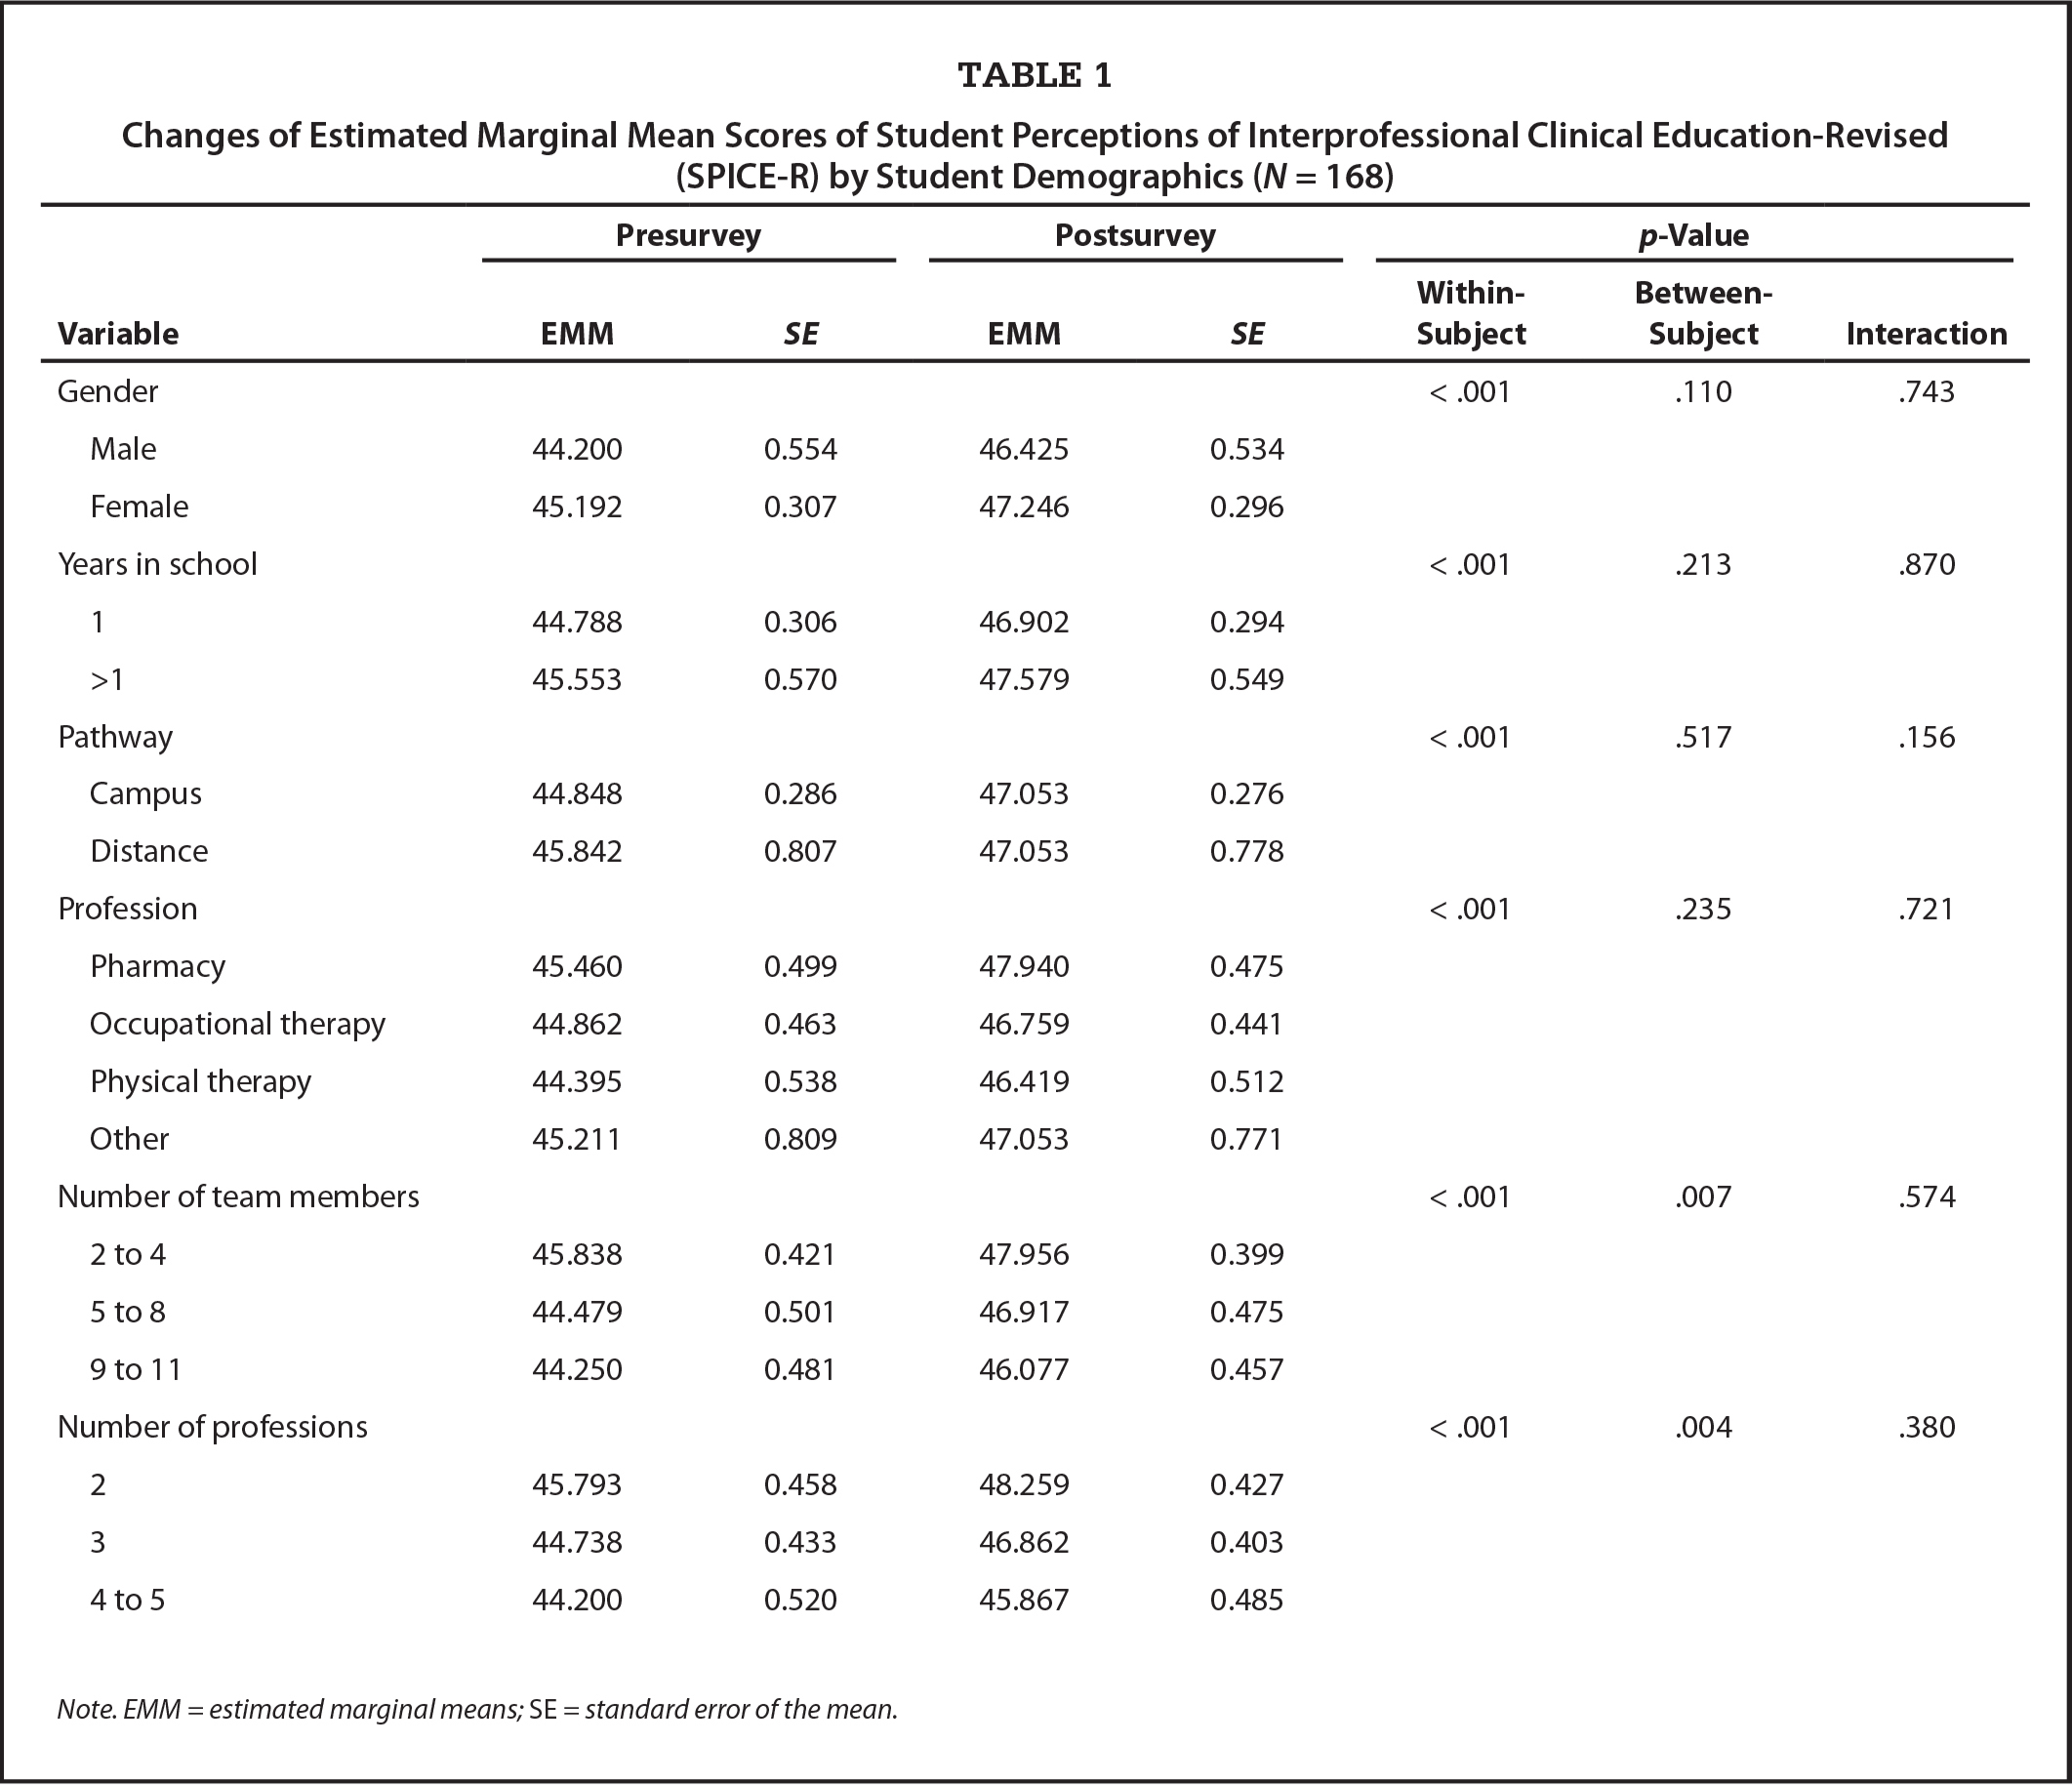 Changes of Estimated Marginal Mean Scores of Student Perceptions of Interprofessional Clinical Education-Revised (SPICE-R) by Student Demographics (N = 168)